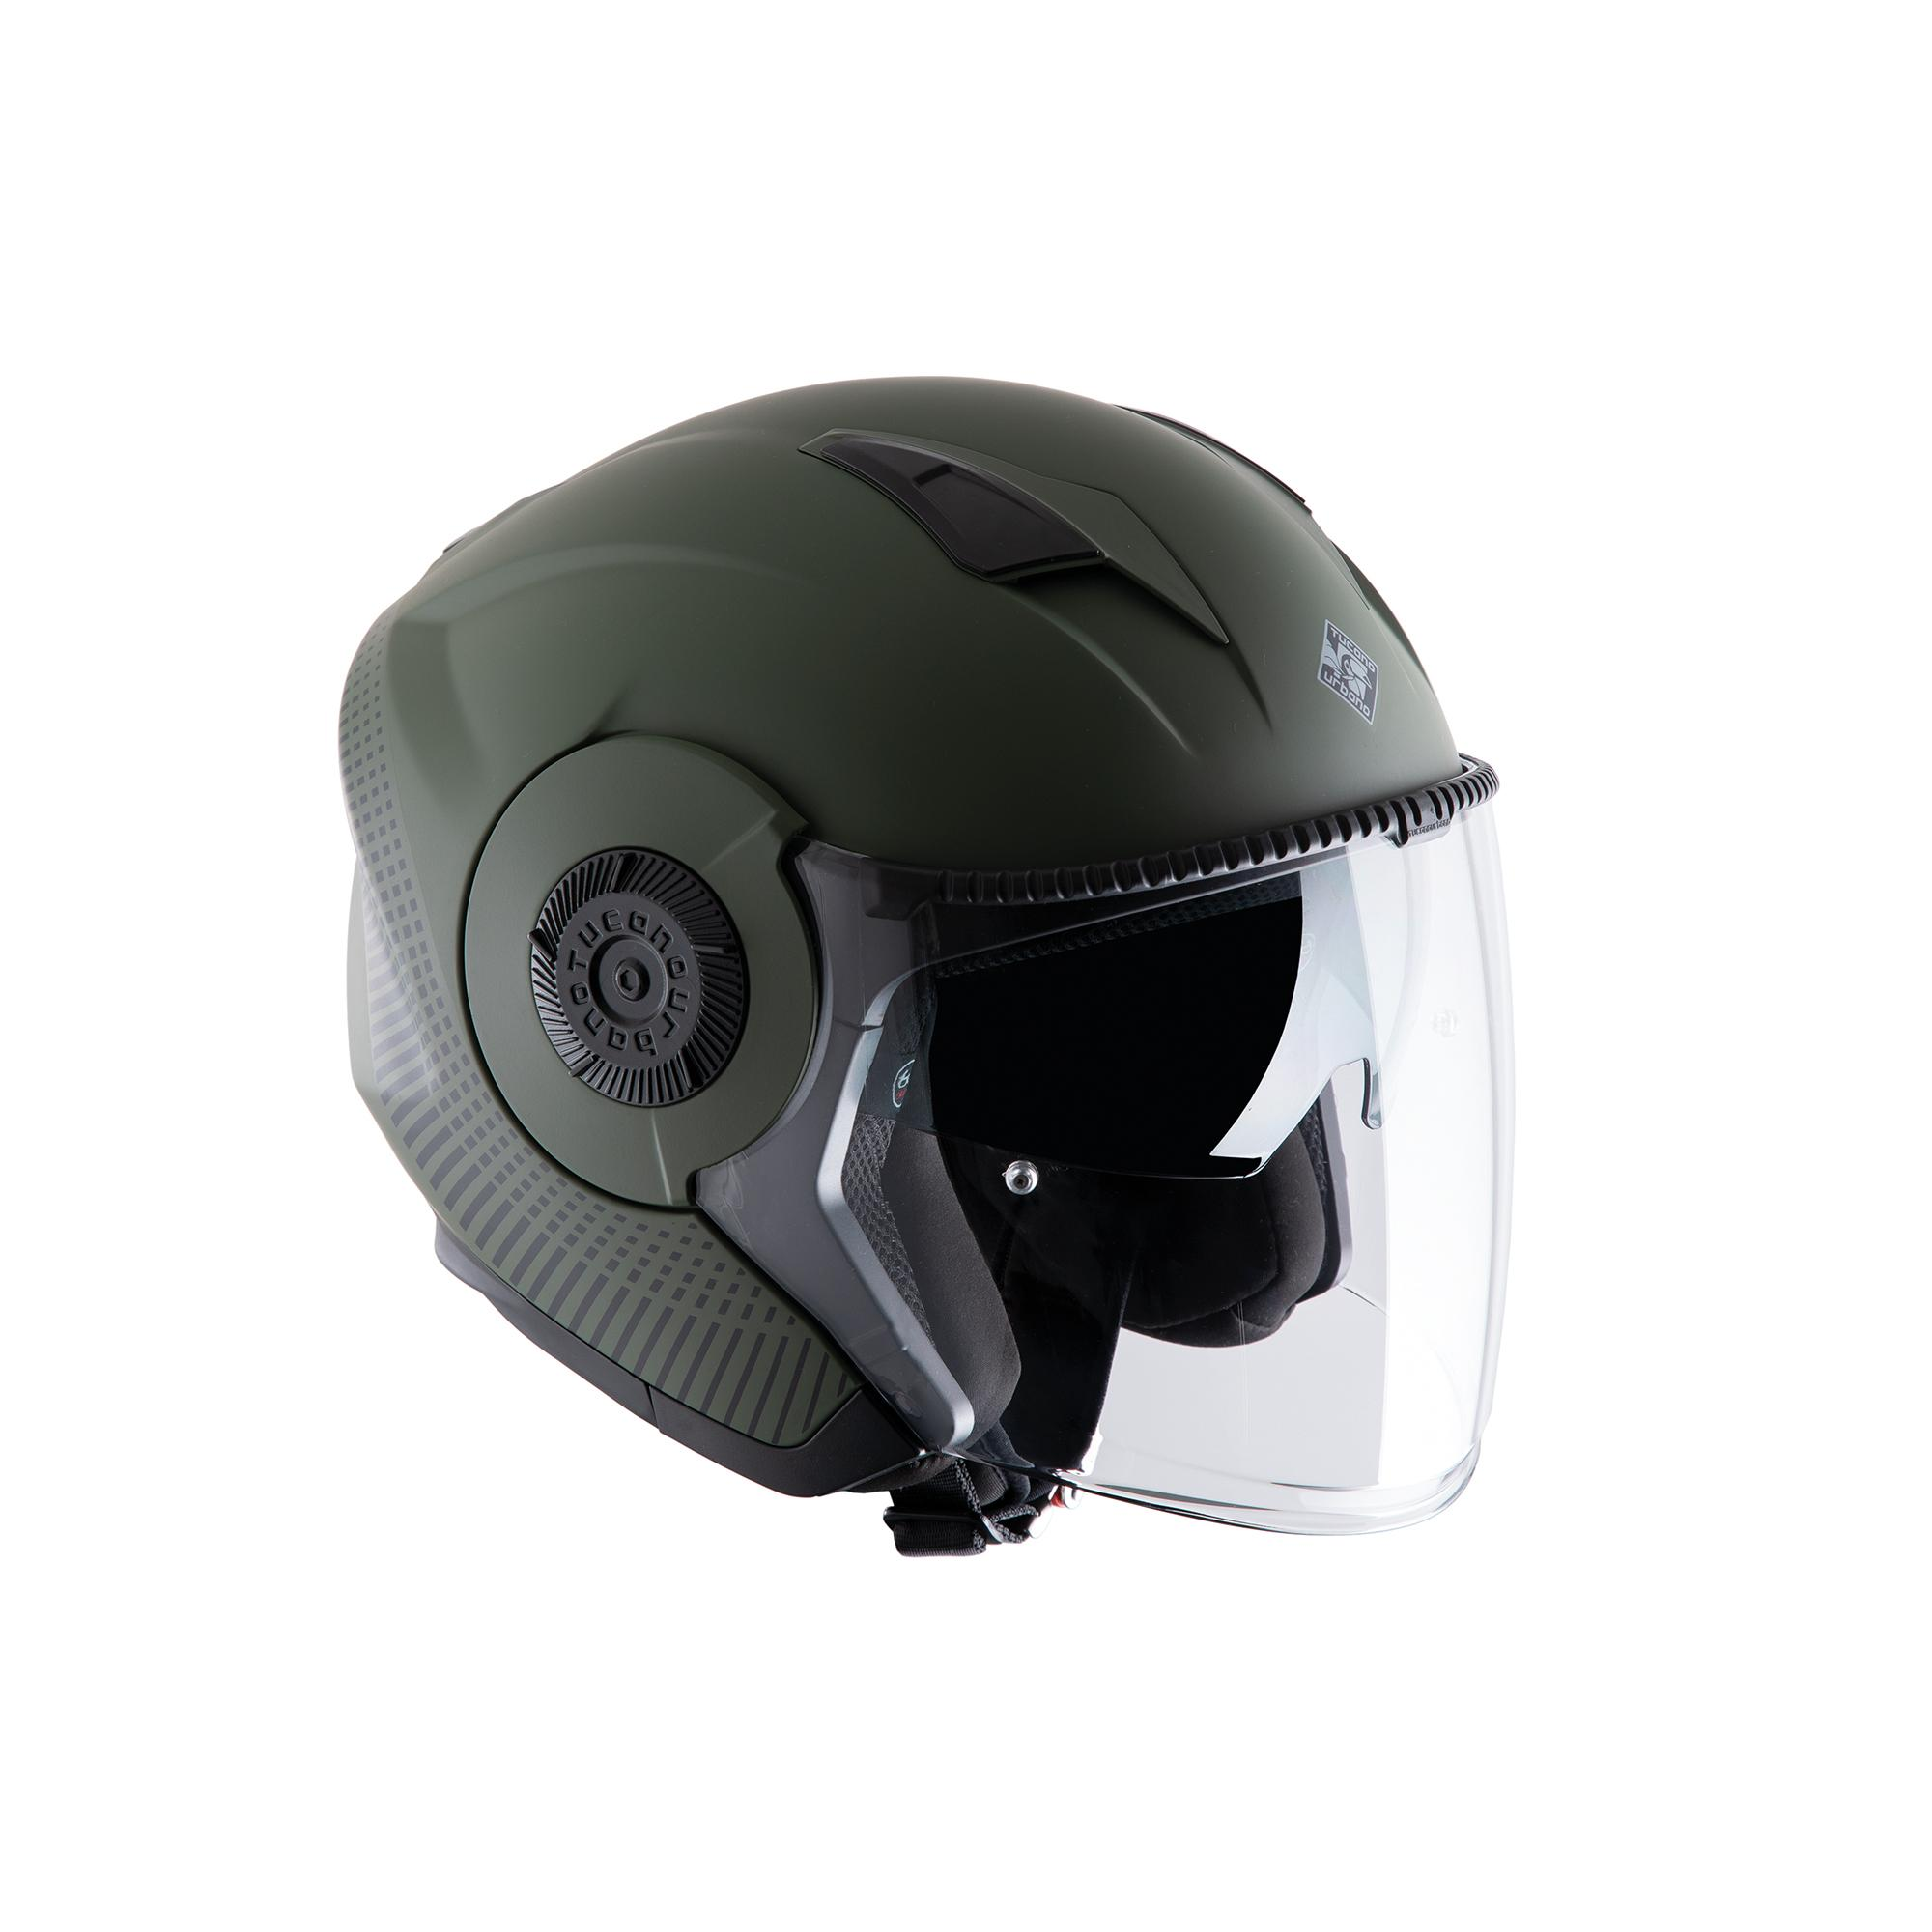 Casco Jet El'tange Airborne Green Graphic–A Opaco